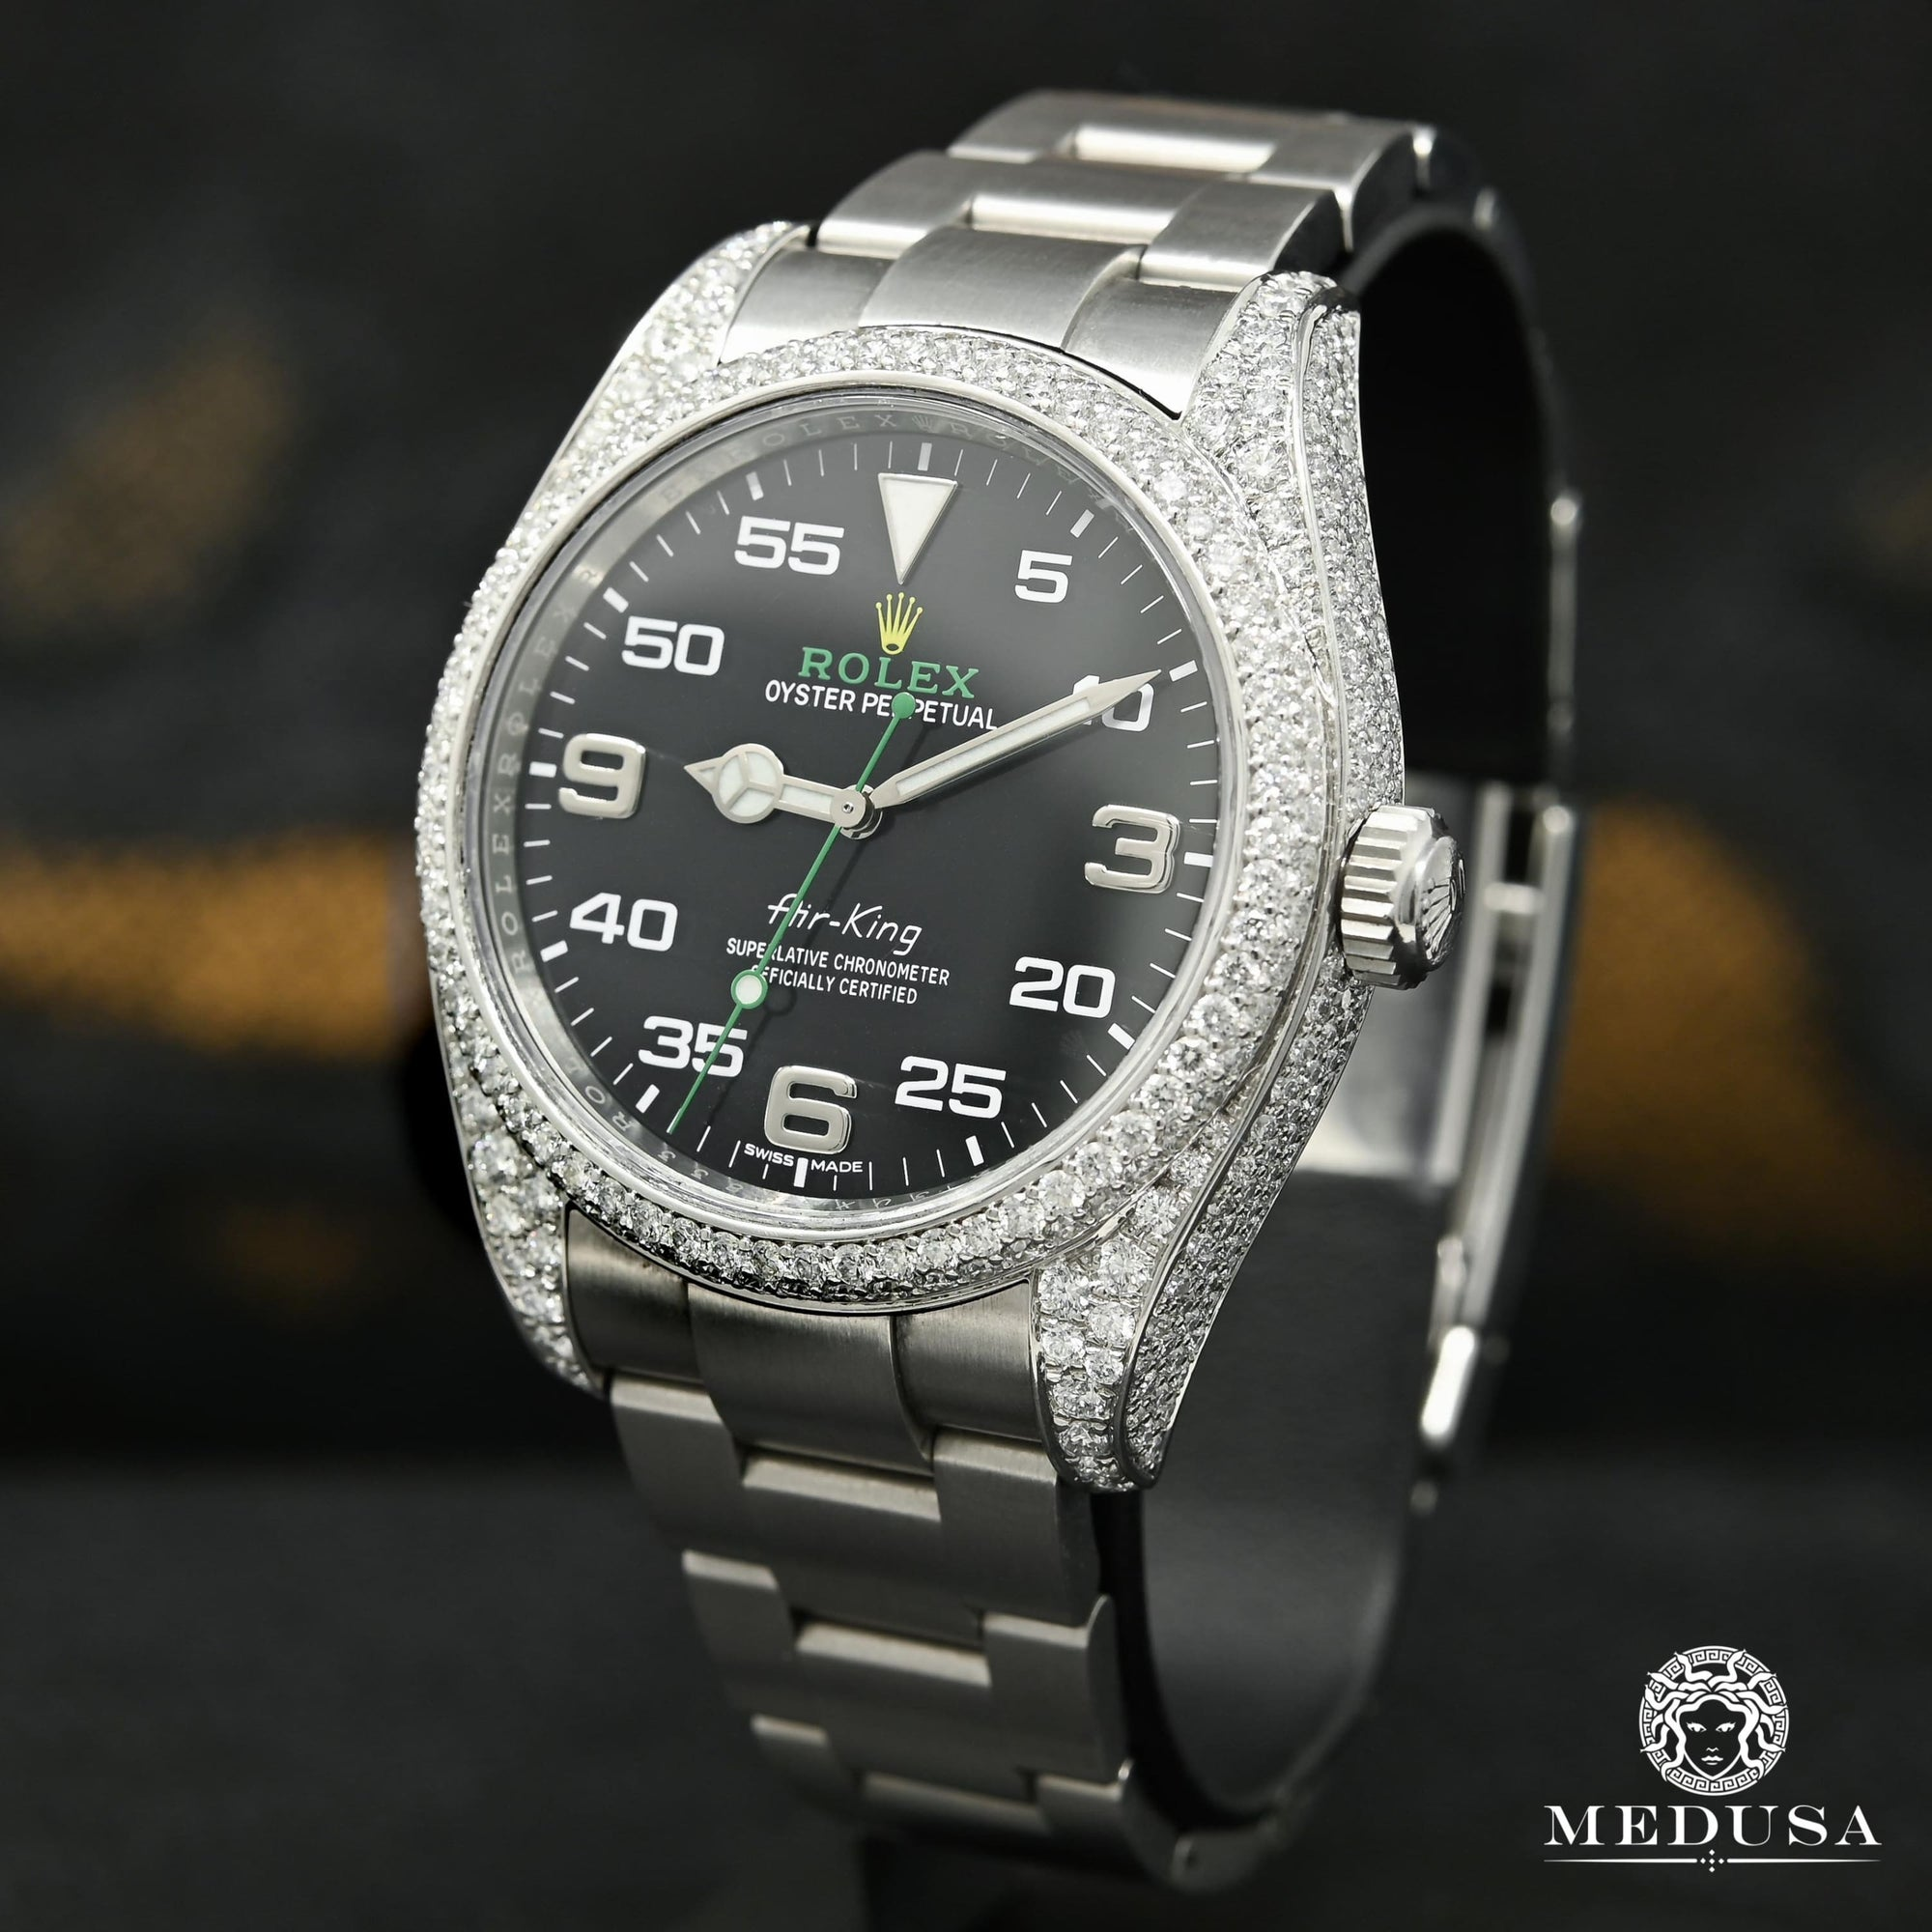 Rolex Air-King 40mm - Honeycomb Case